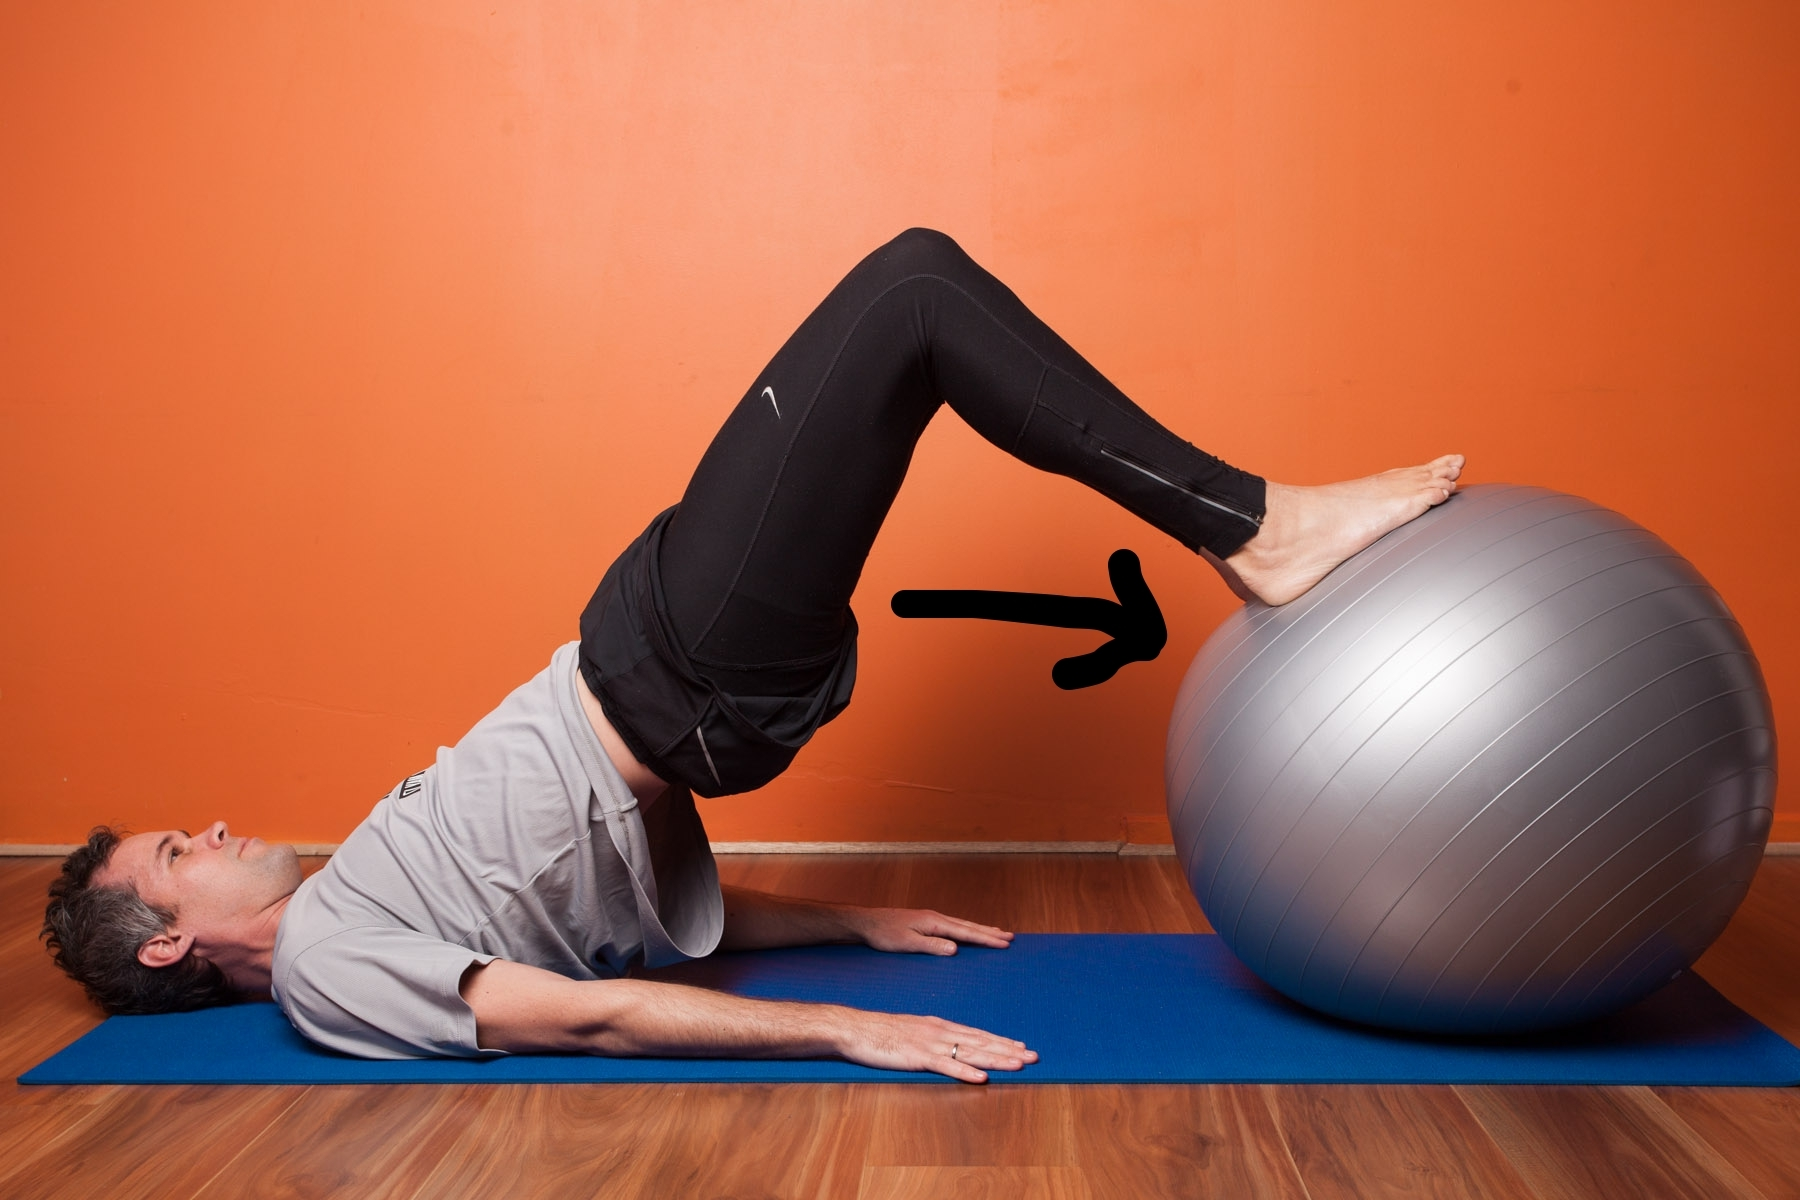 The perfect Eccentric Hamstring Exercise: Strengthening  AND  lengthening.    Quickly pull the ball in towards you and then SLOWLY (slow as you can) lower the ball away from you.      Count to as least 5 seconds as you do this.      Repeat until fatigue. and then do another x 2 rounds.      If you can do x 30 reps pretty easily, try one legged.     Practicing this movement will have a direct improvement on your hamstring problems, especially for runners.